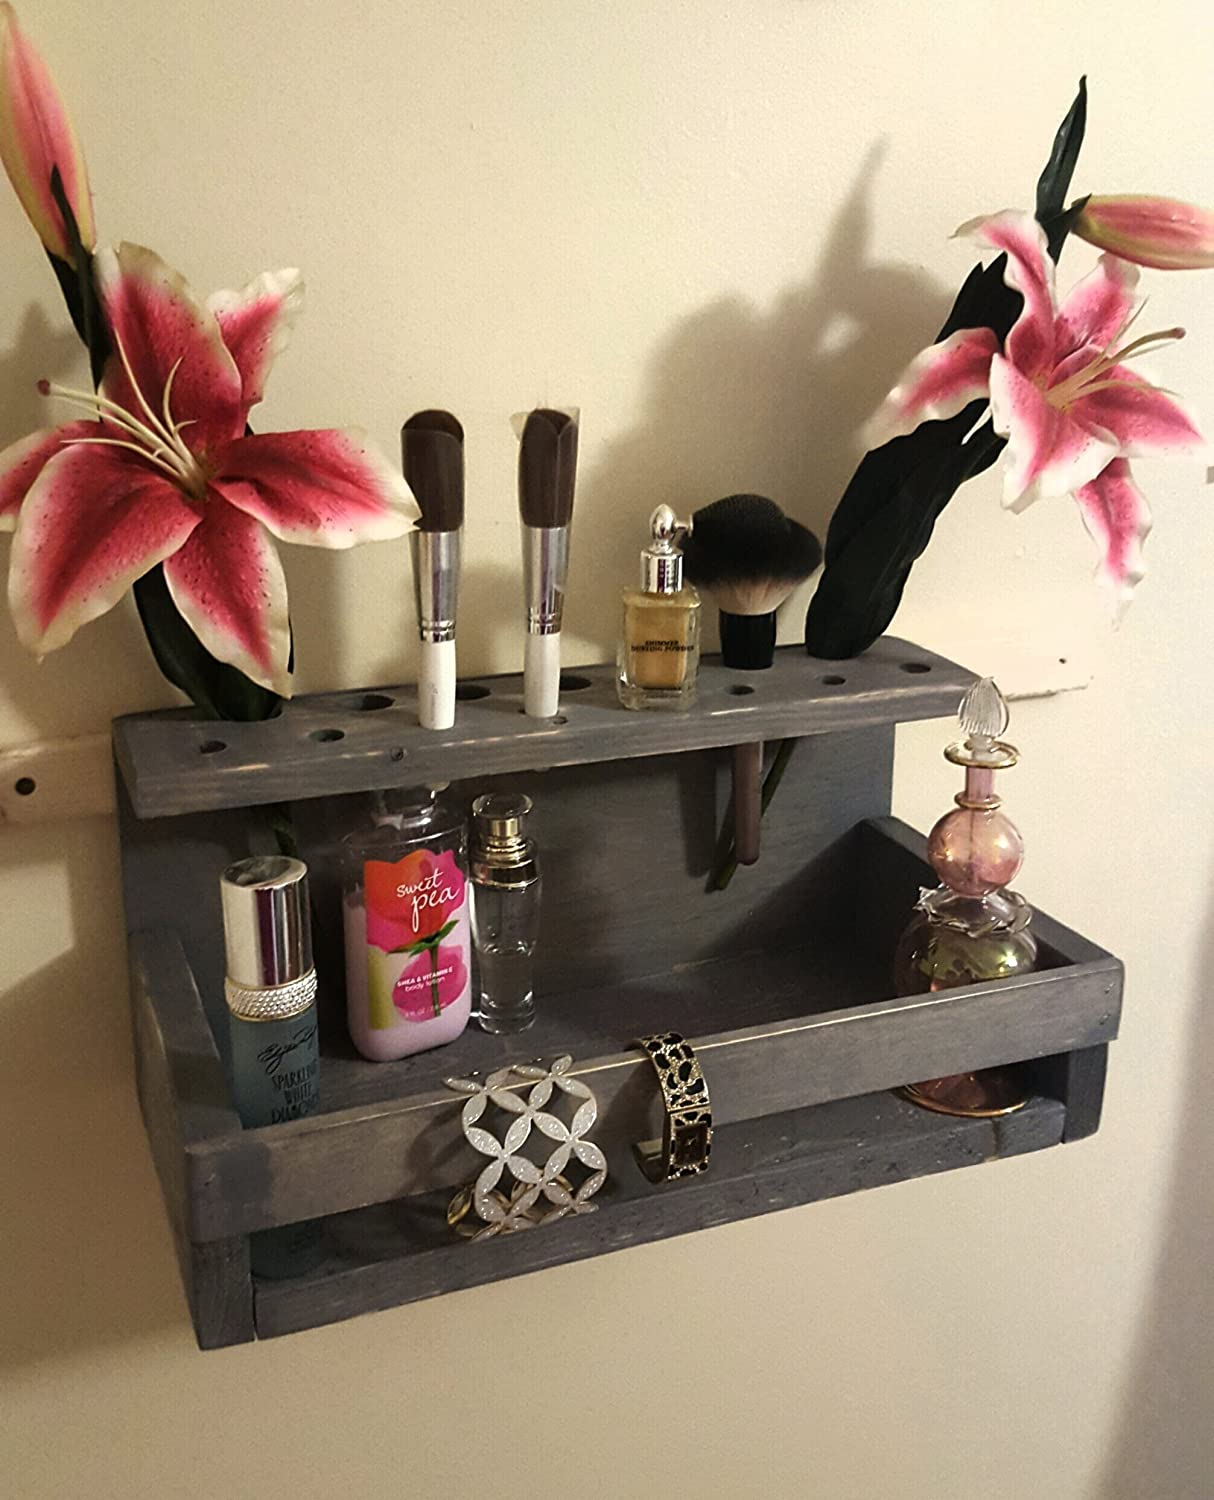 Re-purposed Rustic Wood Makeup/Perfume Shelf Organizer (More Colors Available)